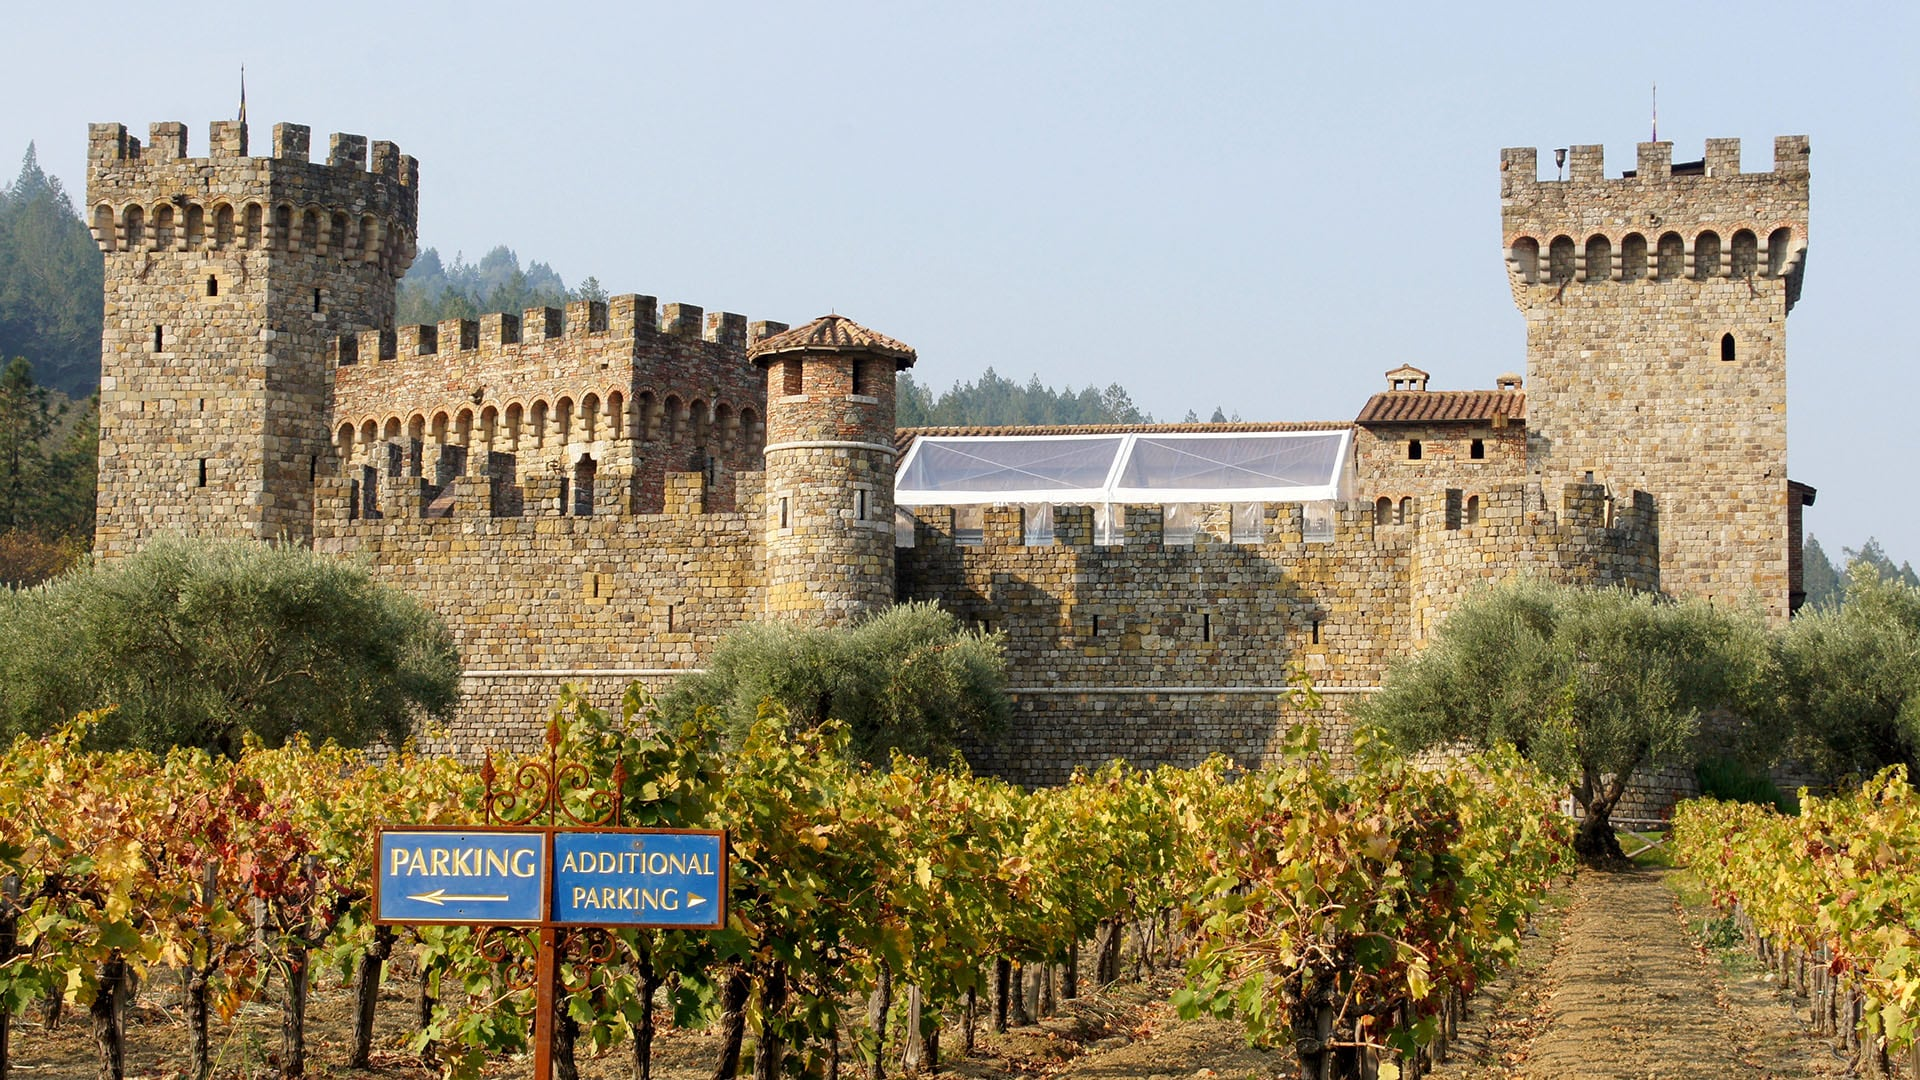 Some 8,000 tons of hand-chiseled local stone and nearly one million imported antique bricks were used to build Castello di Amorosa in Calistoga.